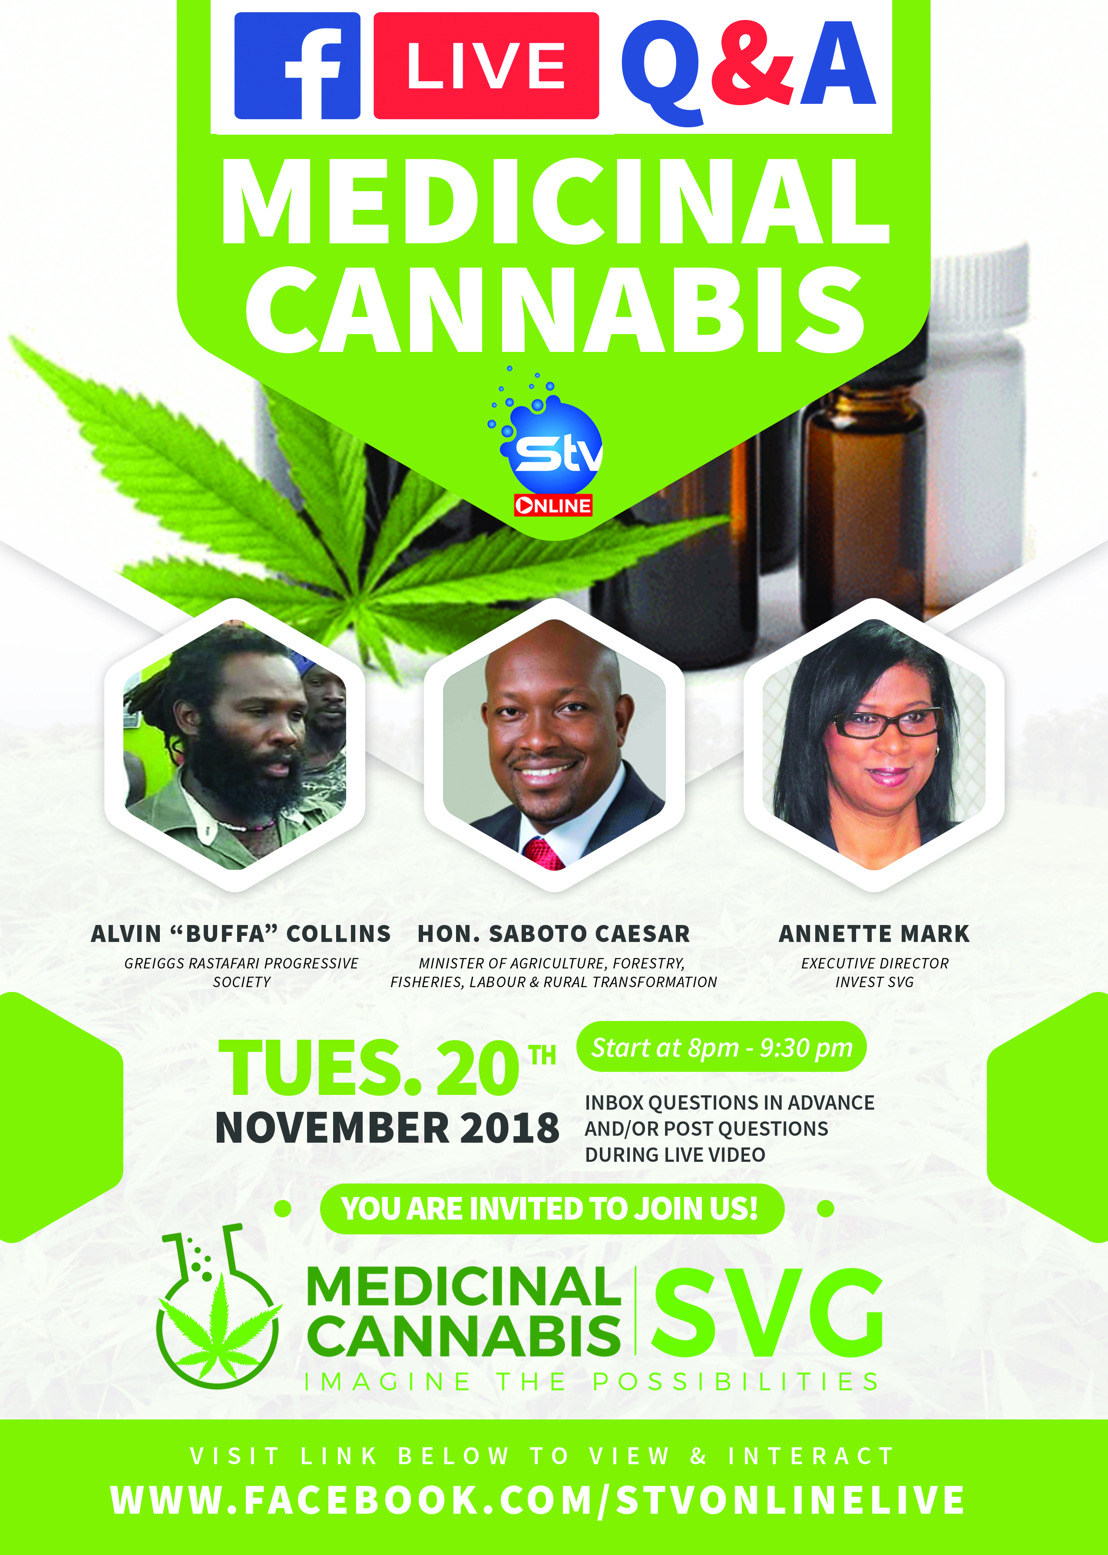 Medicinal Cannabis Investment Opportunities: Saint Vincent and the Grenadines Holds Live Q&A Session